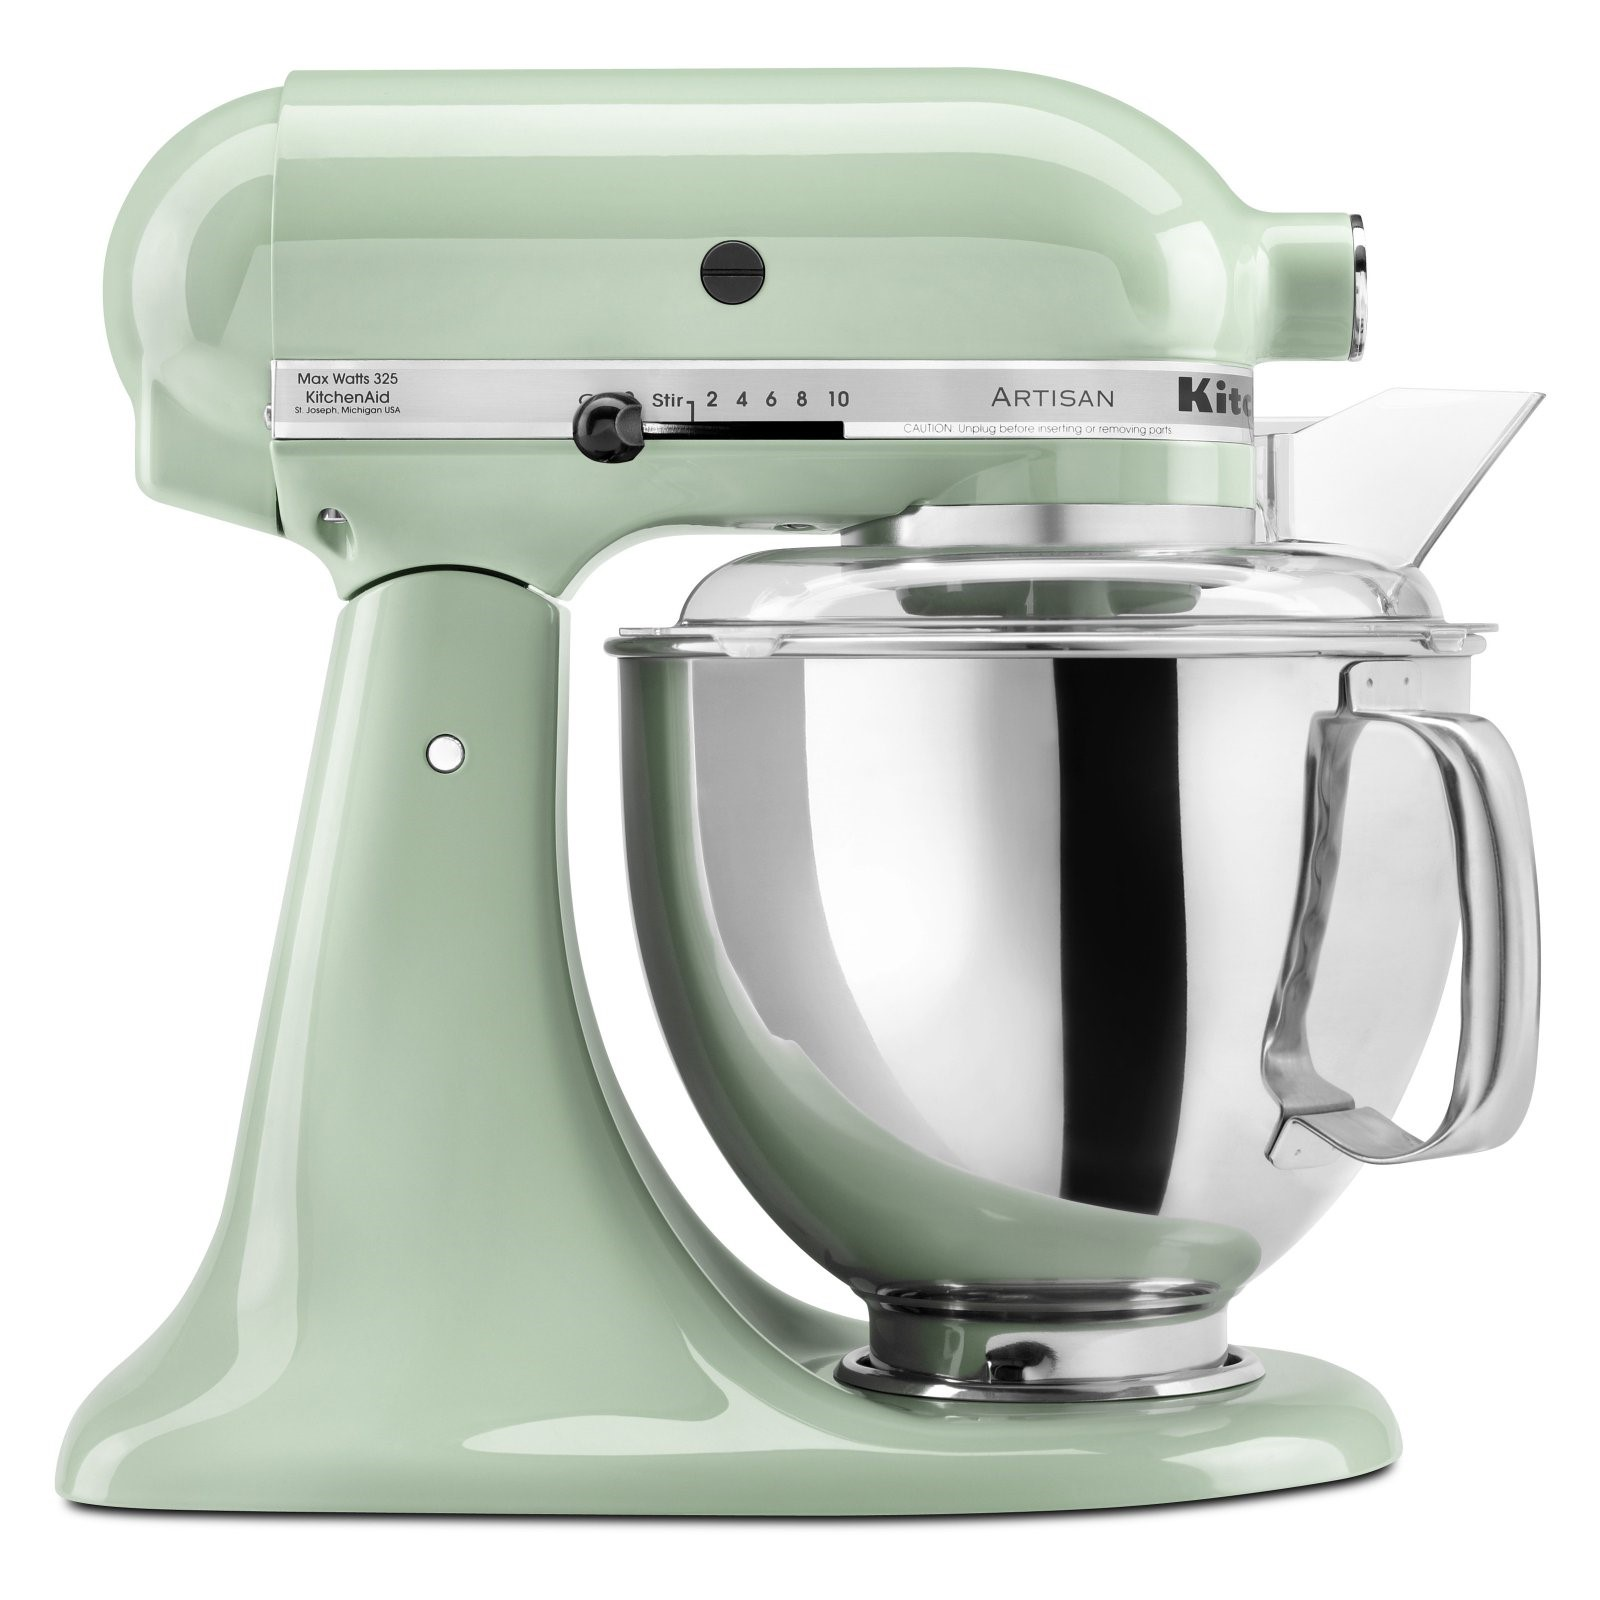 KitchenAid Artisan Series 5-Quart Tilt-Head Stand Mixer, Red (KSM150PSER)